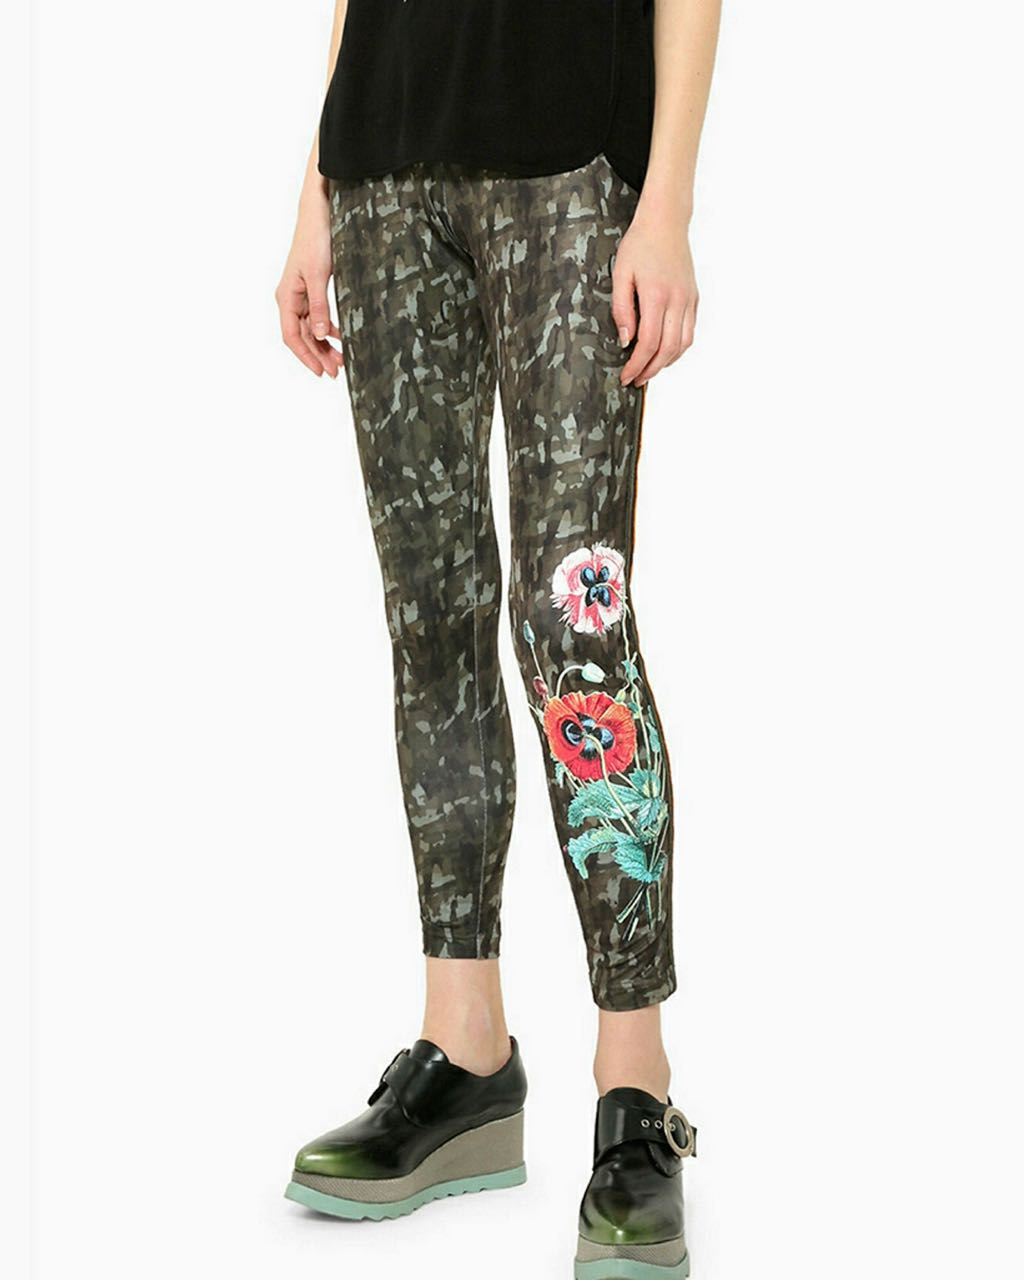 17WWKK11_4018 Desigual Leggings Ayrton Buy Online